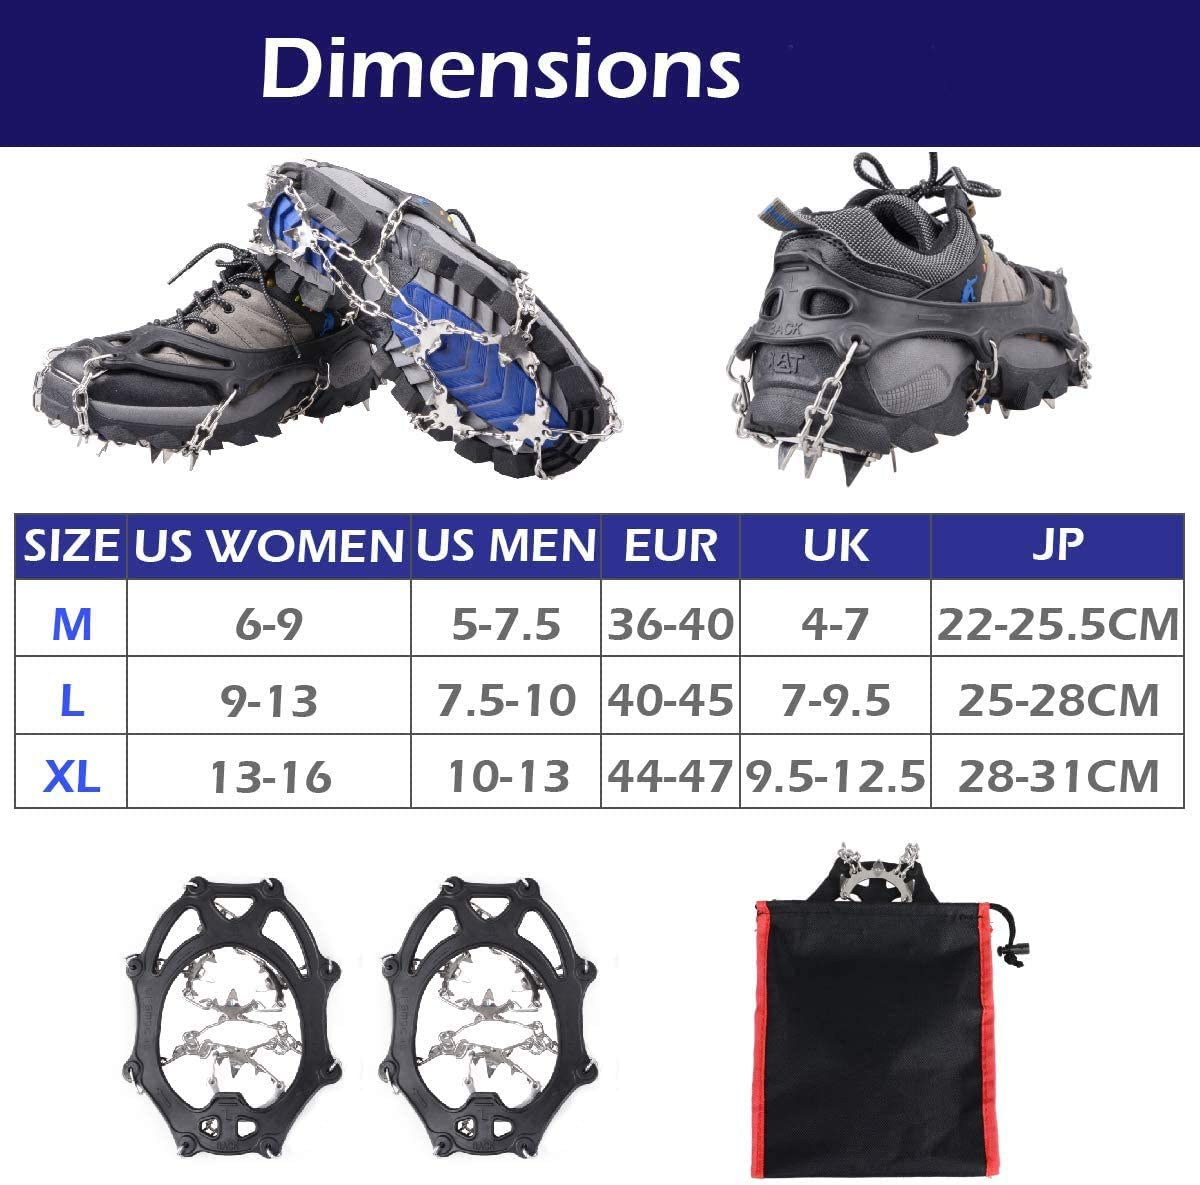 Upgraded Version Of Crampons Ice Cleats Traction Snow Grips for Boots Shoes Women Men Kids Anti Slip 19 Stainless Steel Spikes Safe Protect for Hiking Walking Climbing With Neck Gaiters